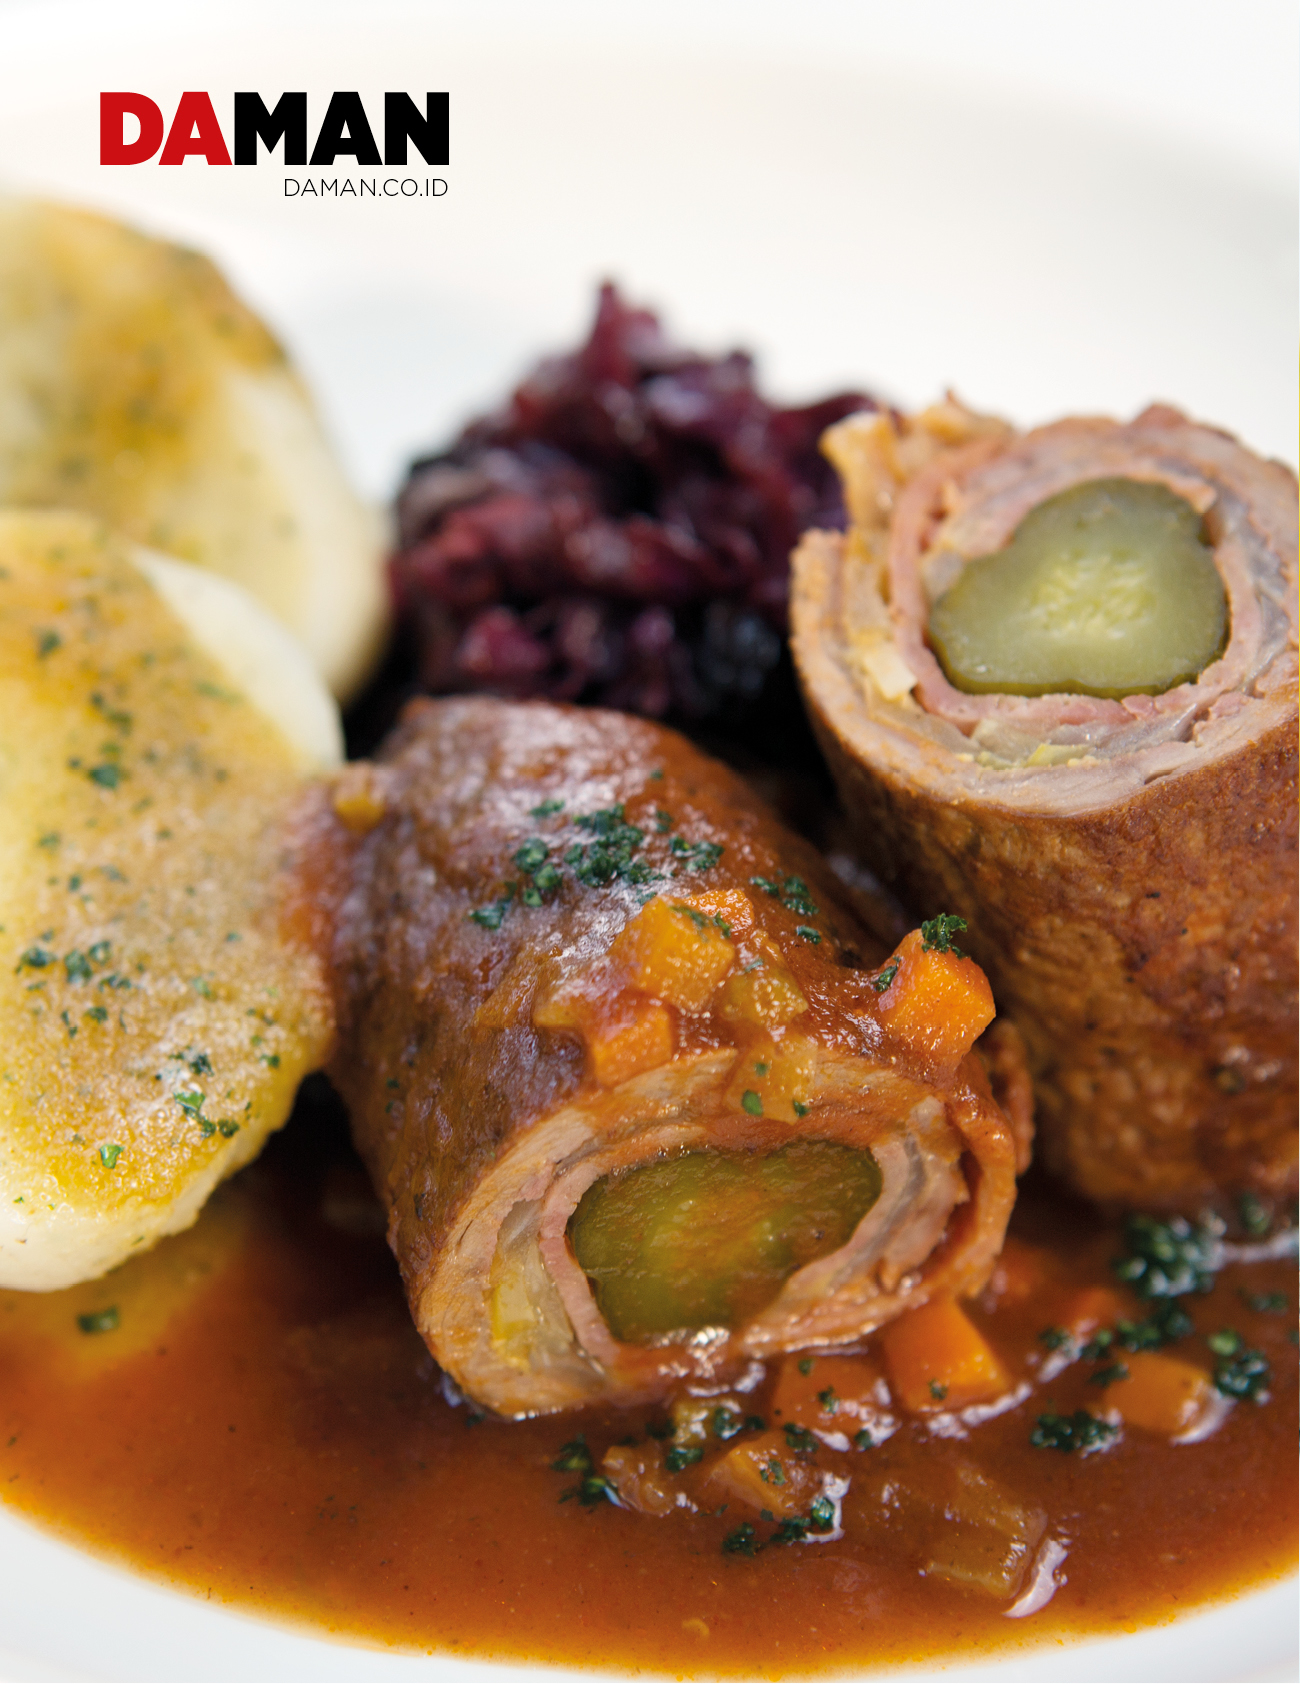 Cuisine: Authentic German Recipes | DA MAN Magazine